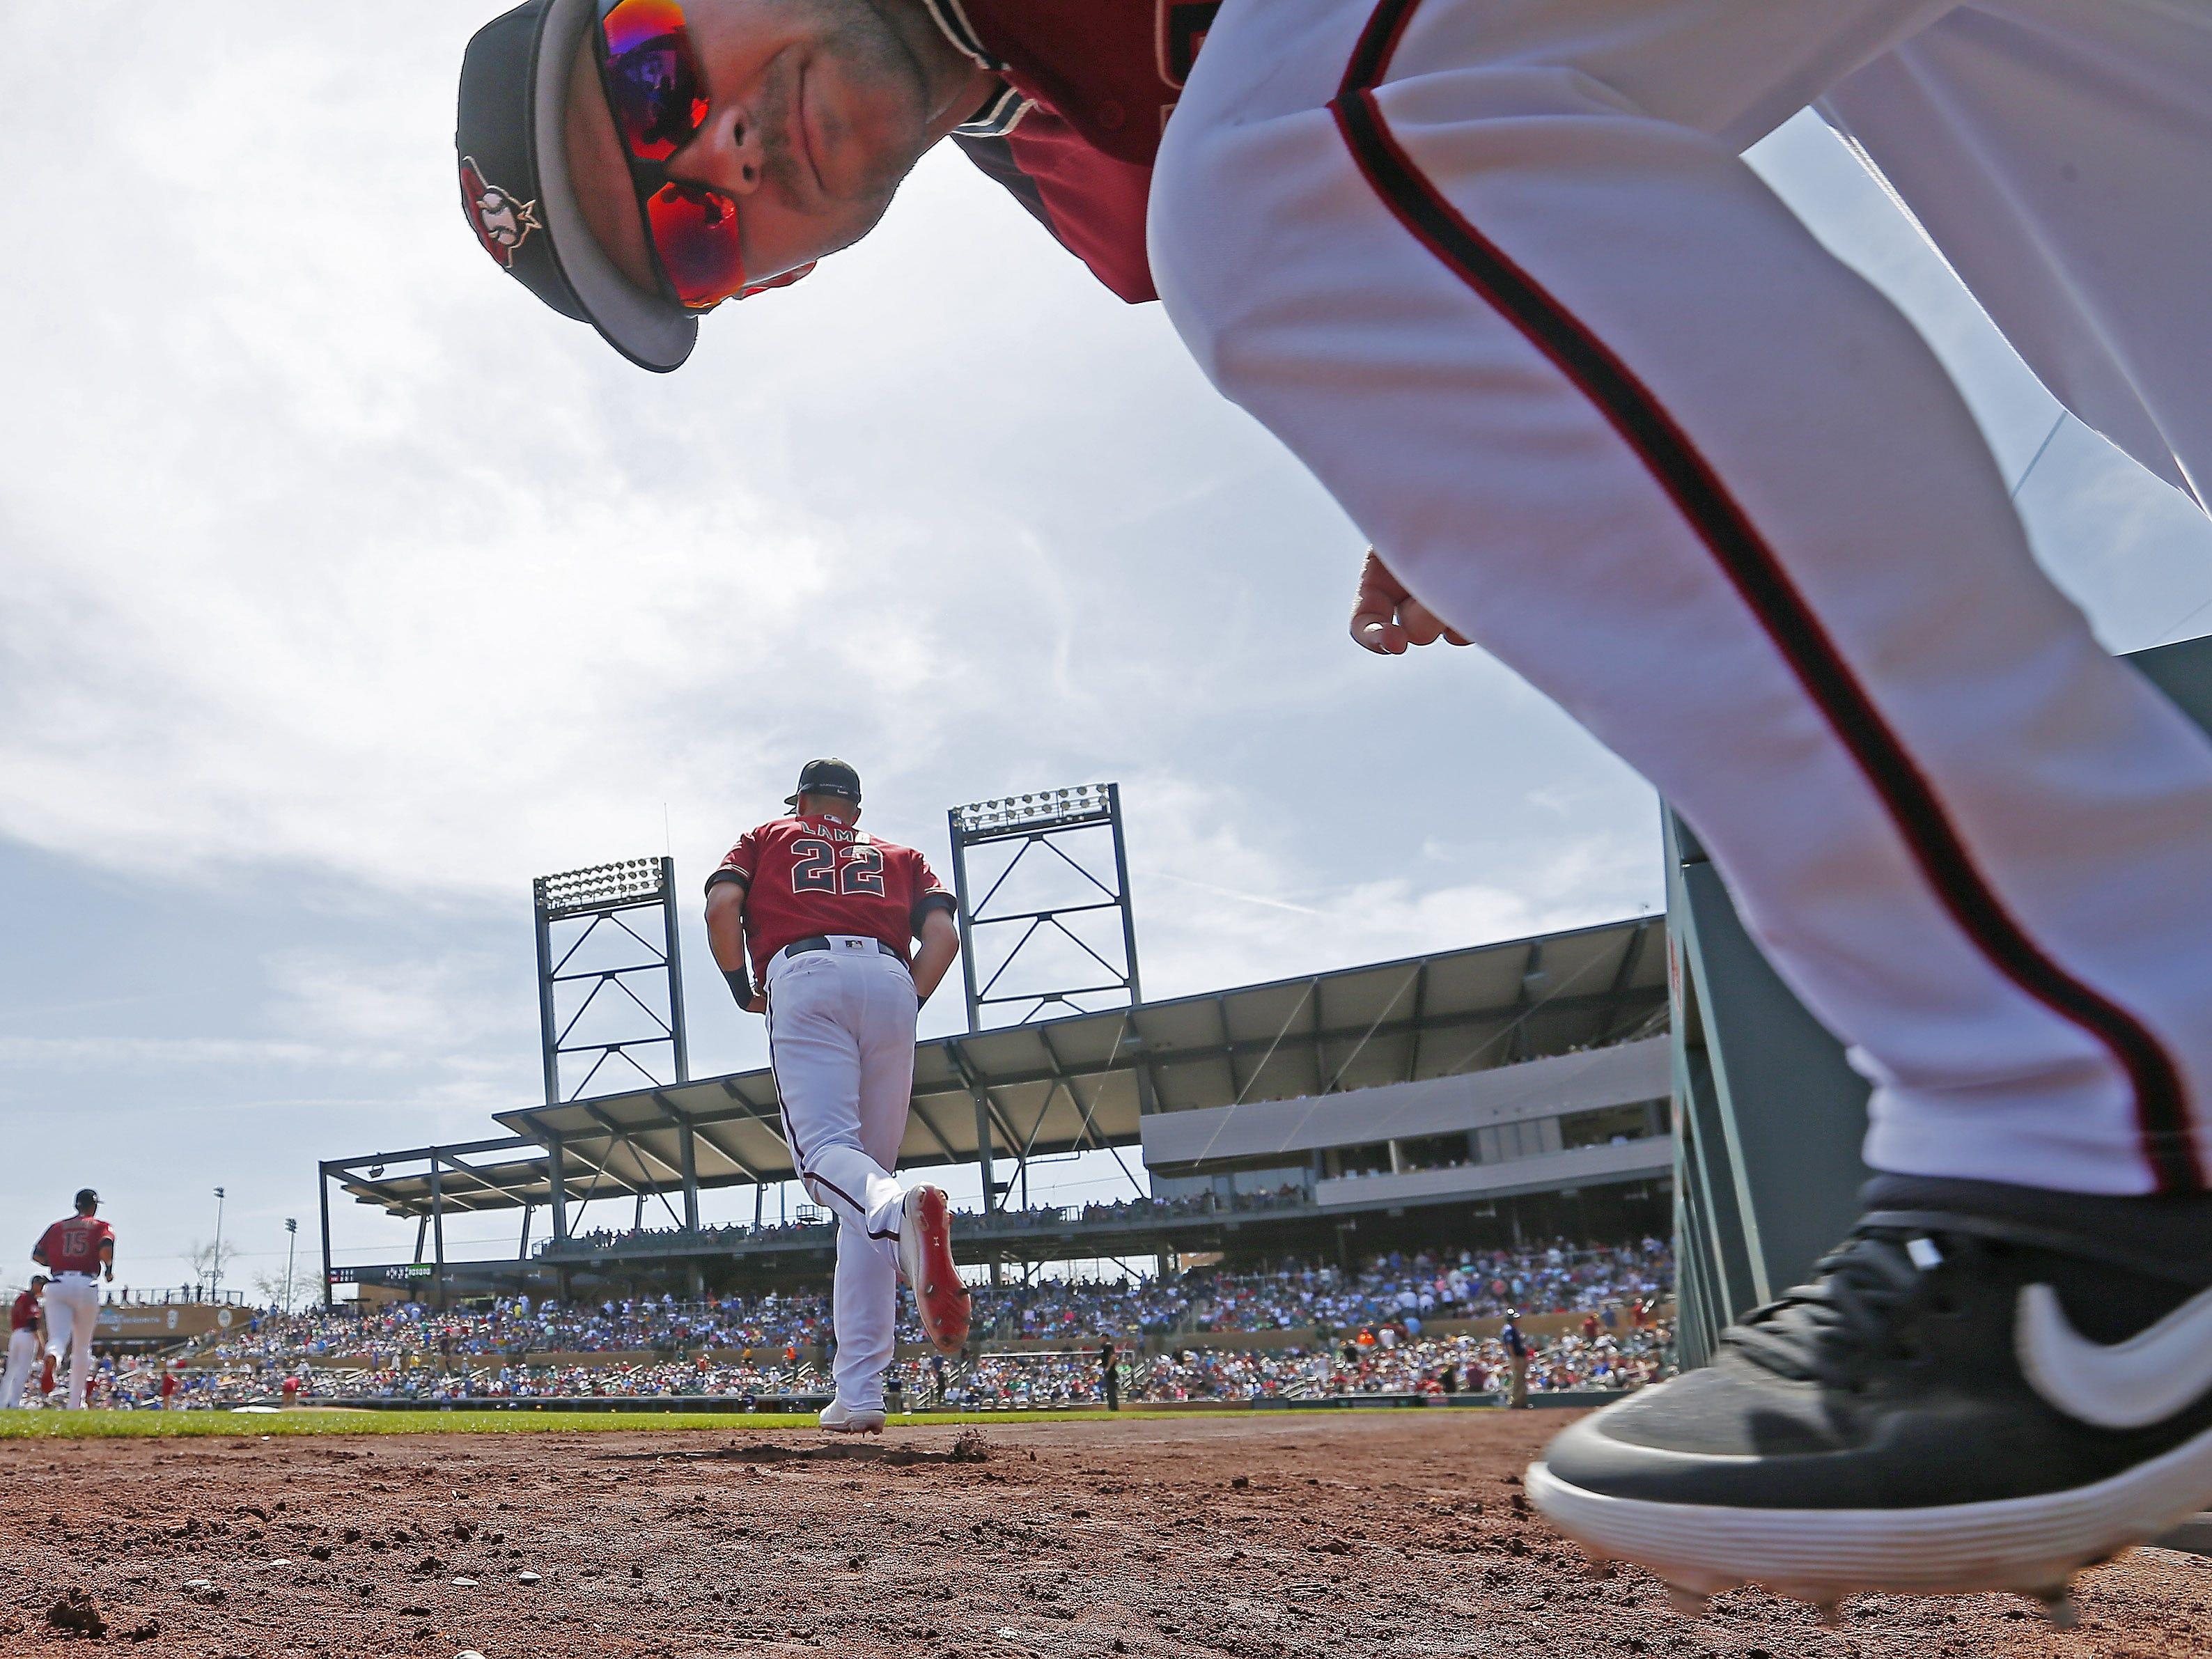 Arizona Diamondbacks LF Matt Szczur takes the field against the Milwaukee Brewers during spring training at Salt River Fields at Talking Stick March 24, 2019.